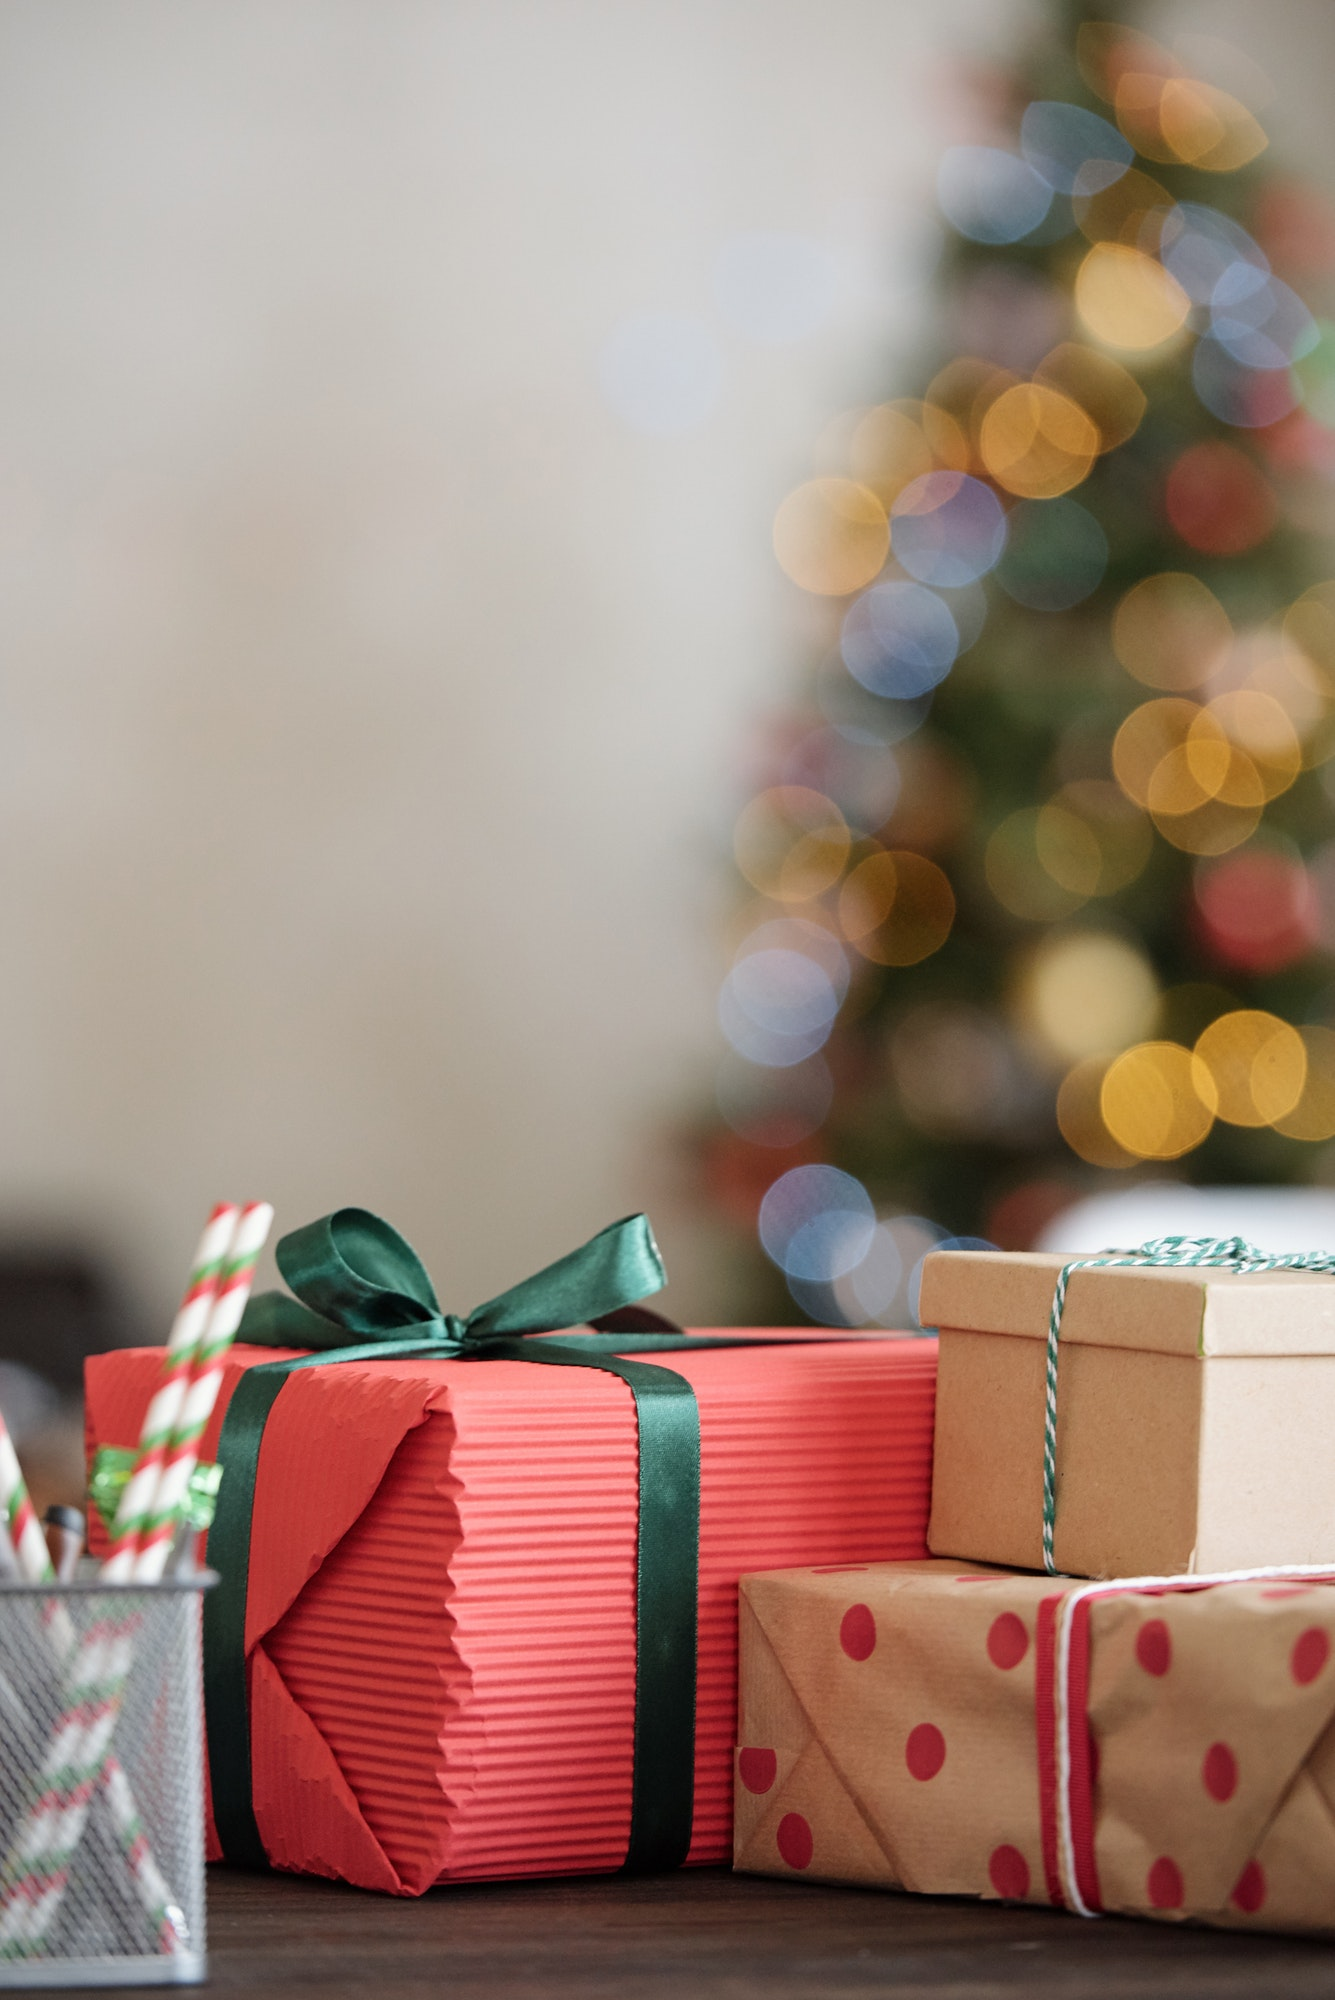 Group of packed Christmas gifts on table in front of camera against xmas tree